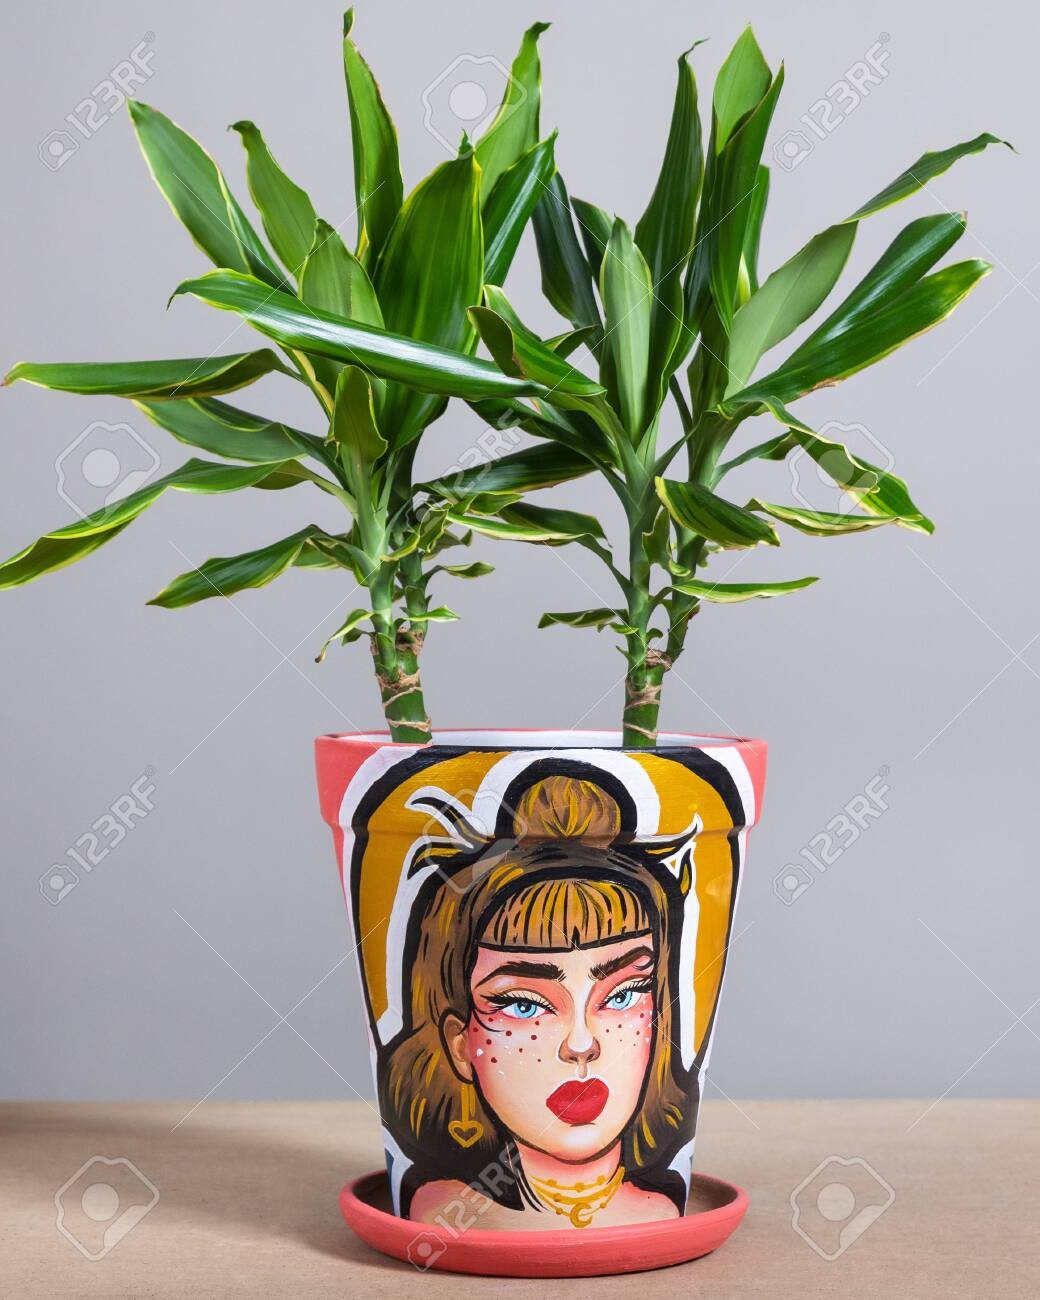 Dracaena Fragrans In The Colorful Hand Painted Plant Pot Woman Stock Photo Picture And Royalty Free Image Image 151364634